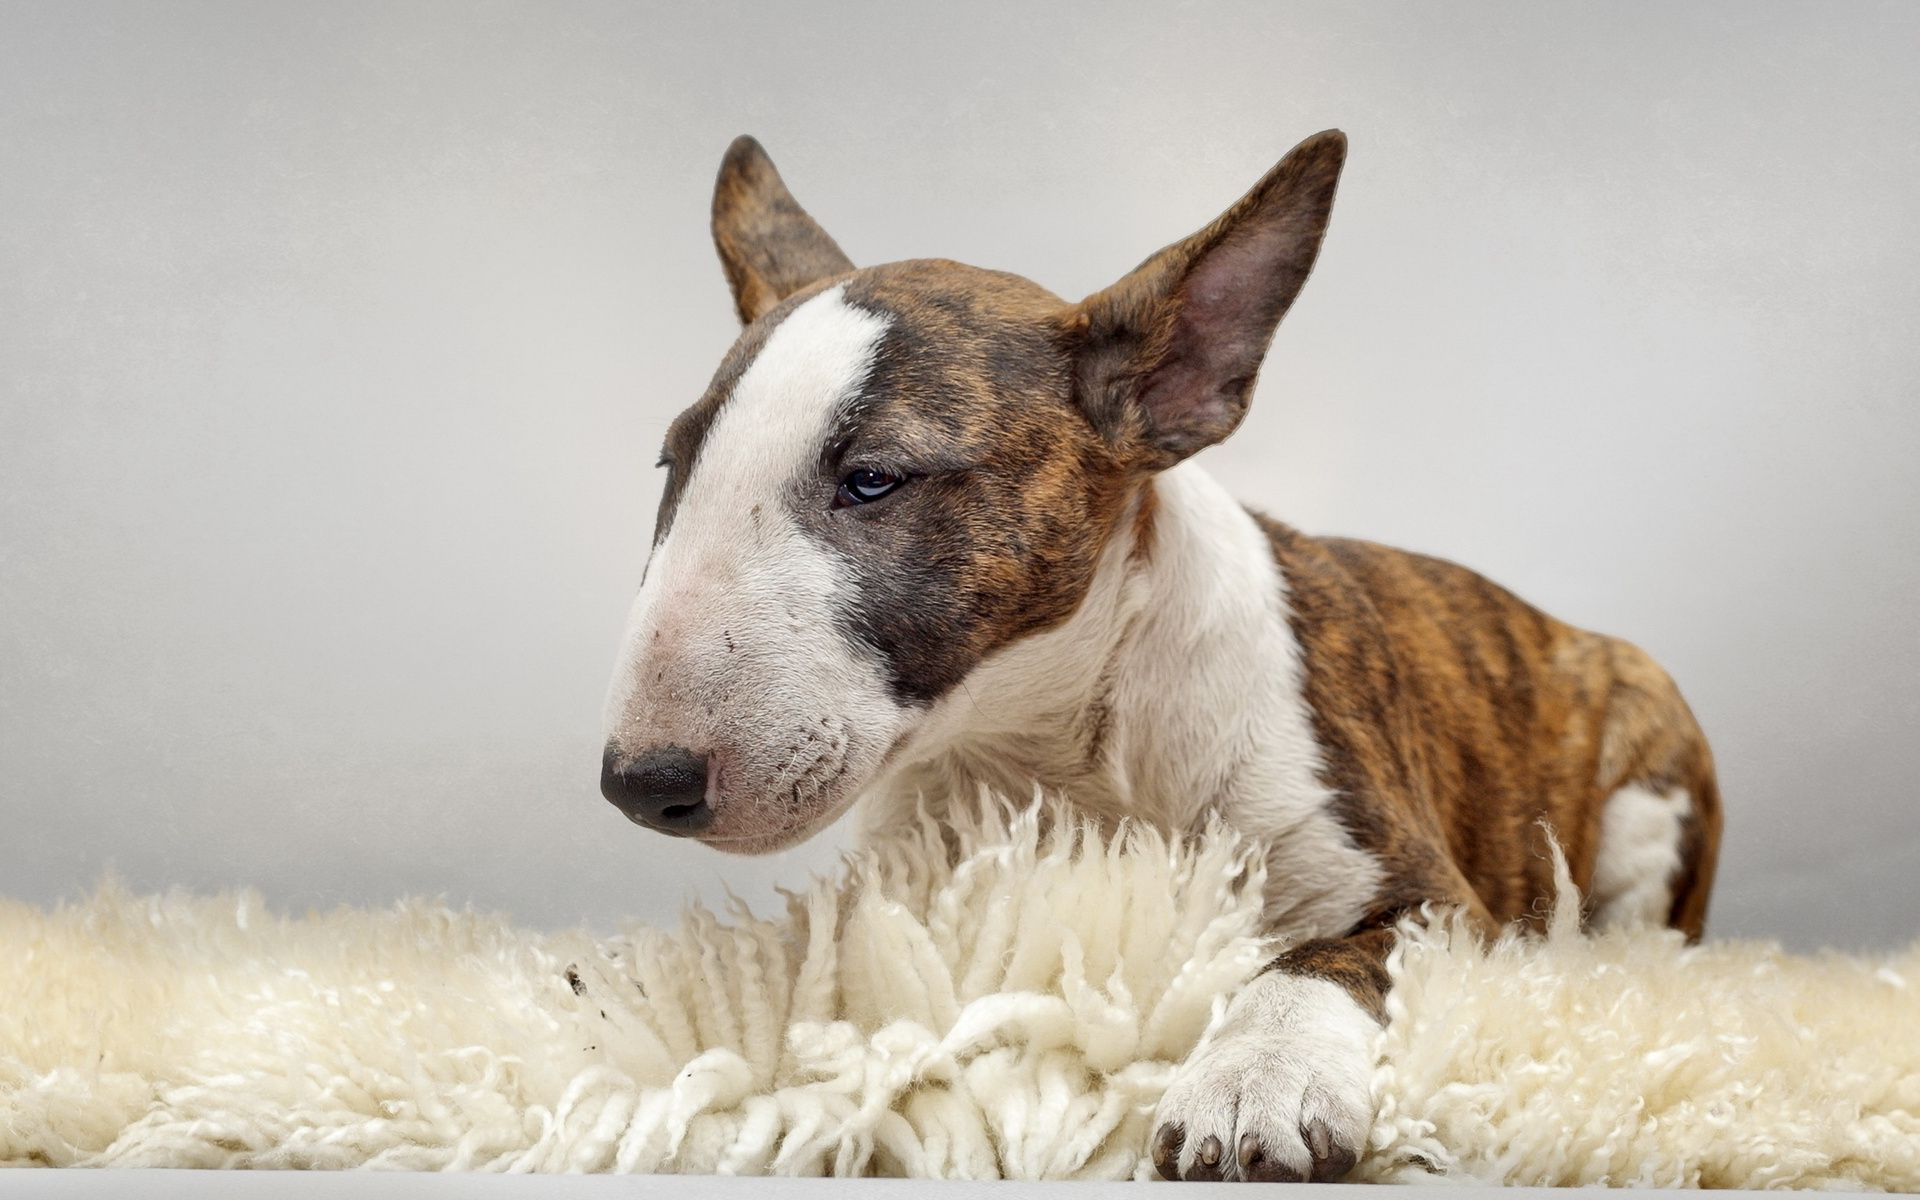 Bull Terrier Wallpapers Images Photos Pictures Backgrounds